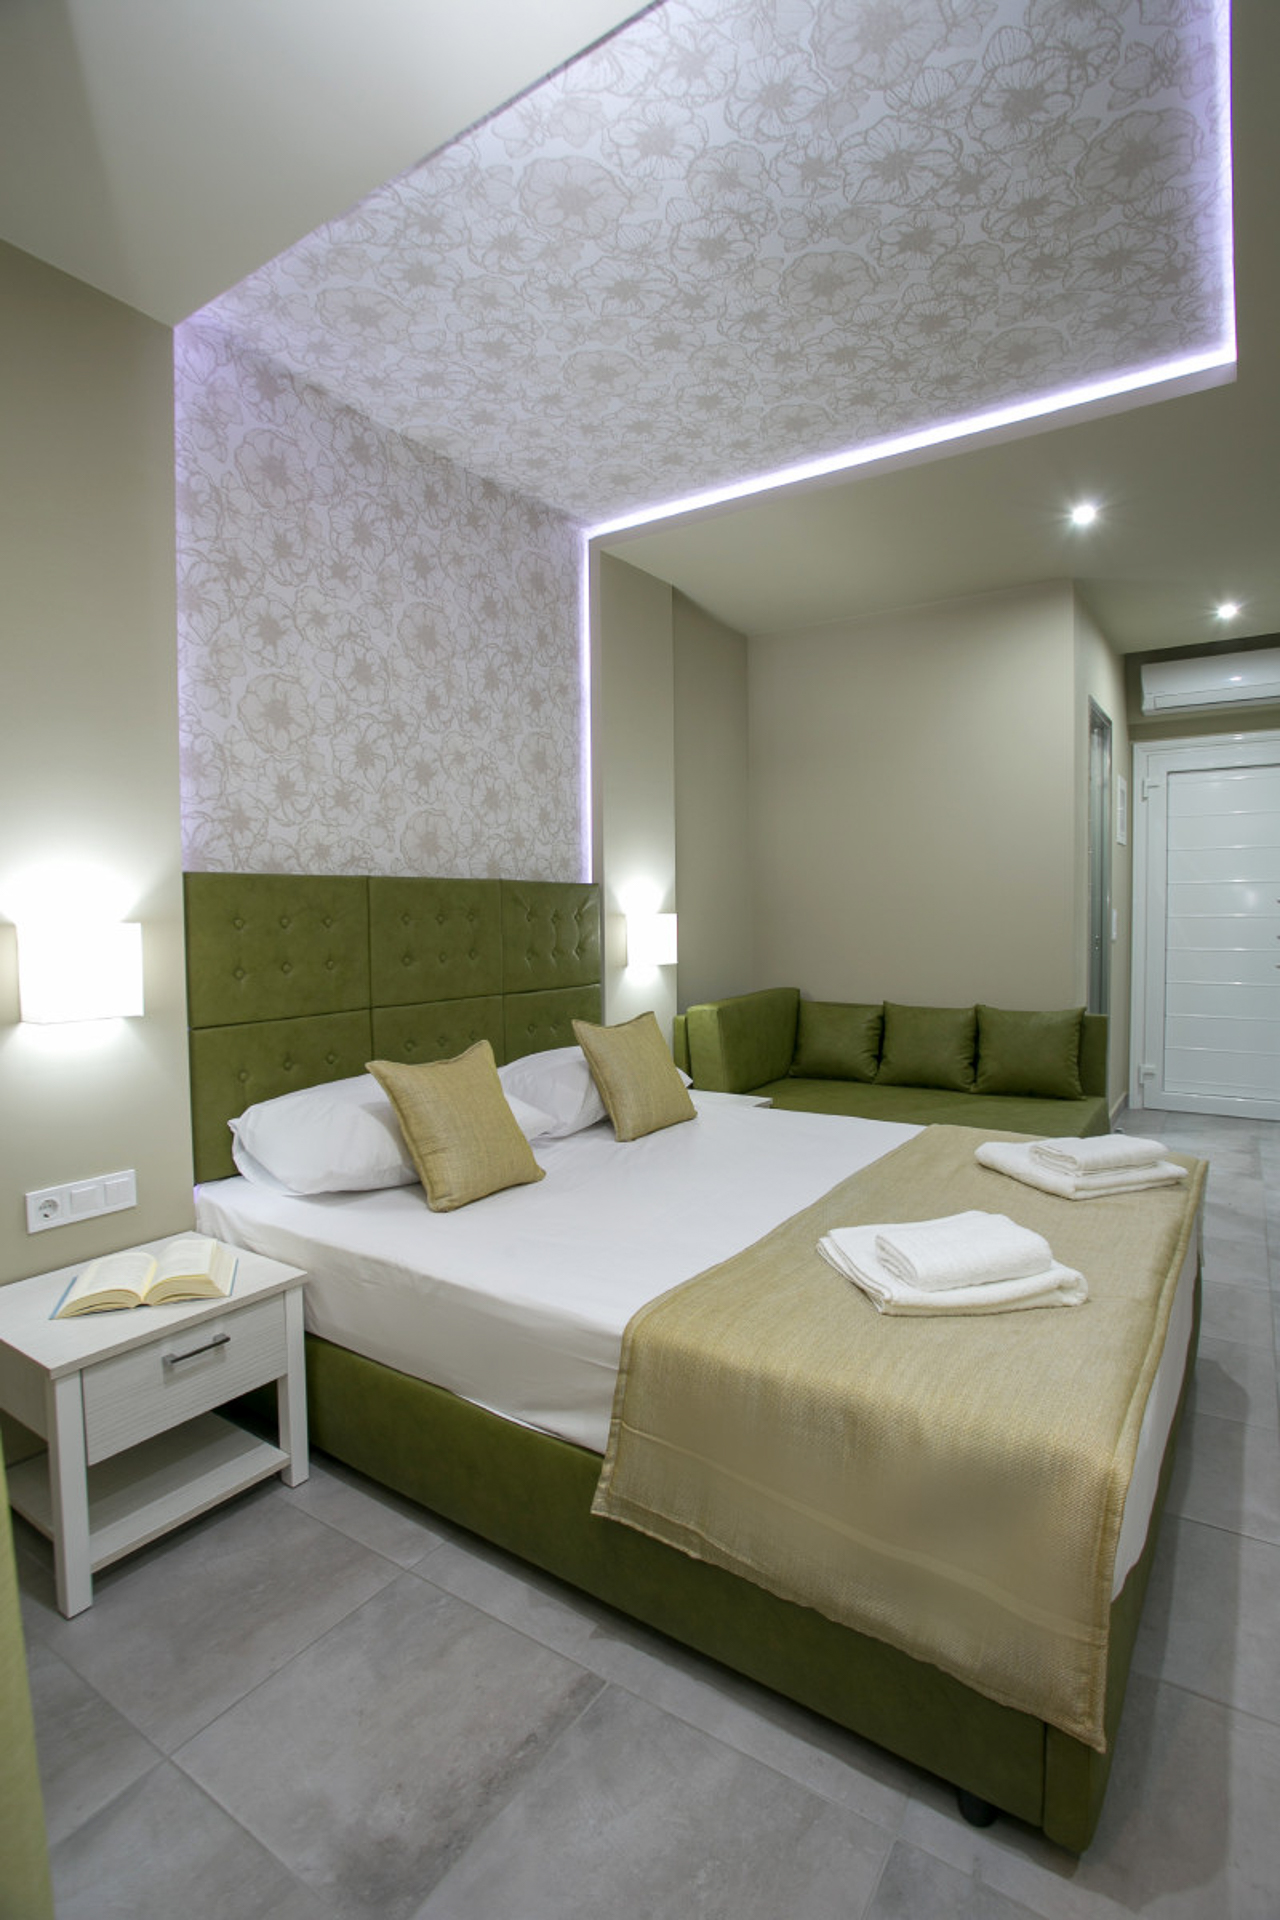 emerald room 7la feyra luxury rooms limenaria thassos emerald room 3